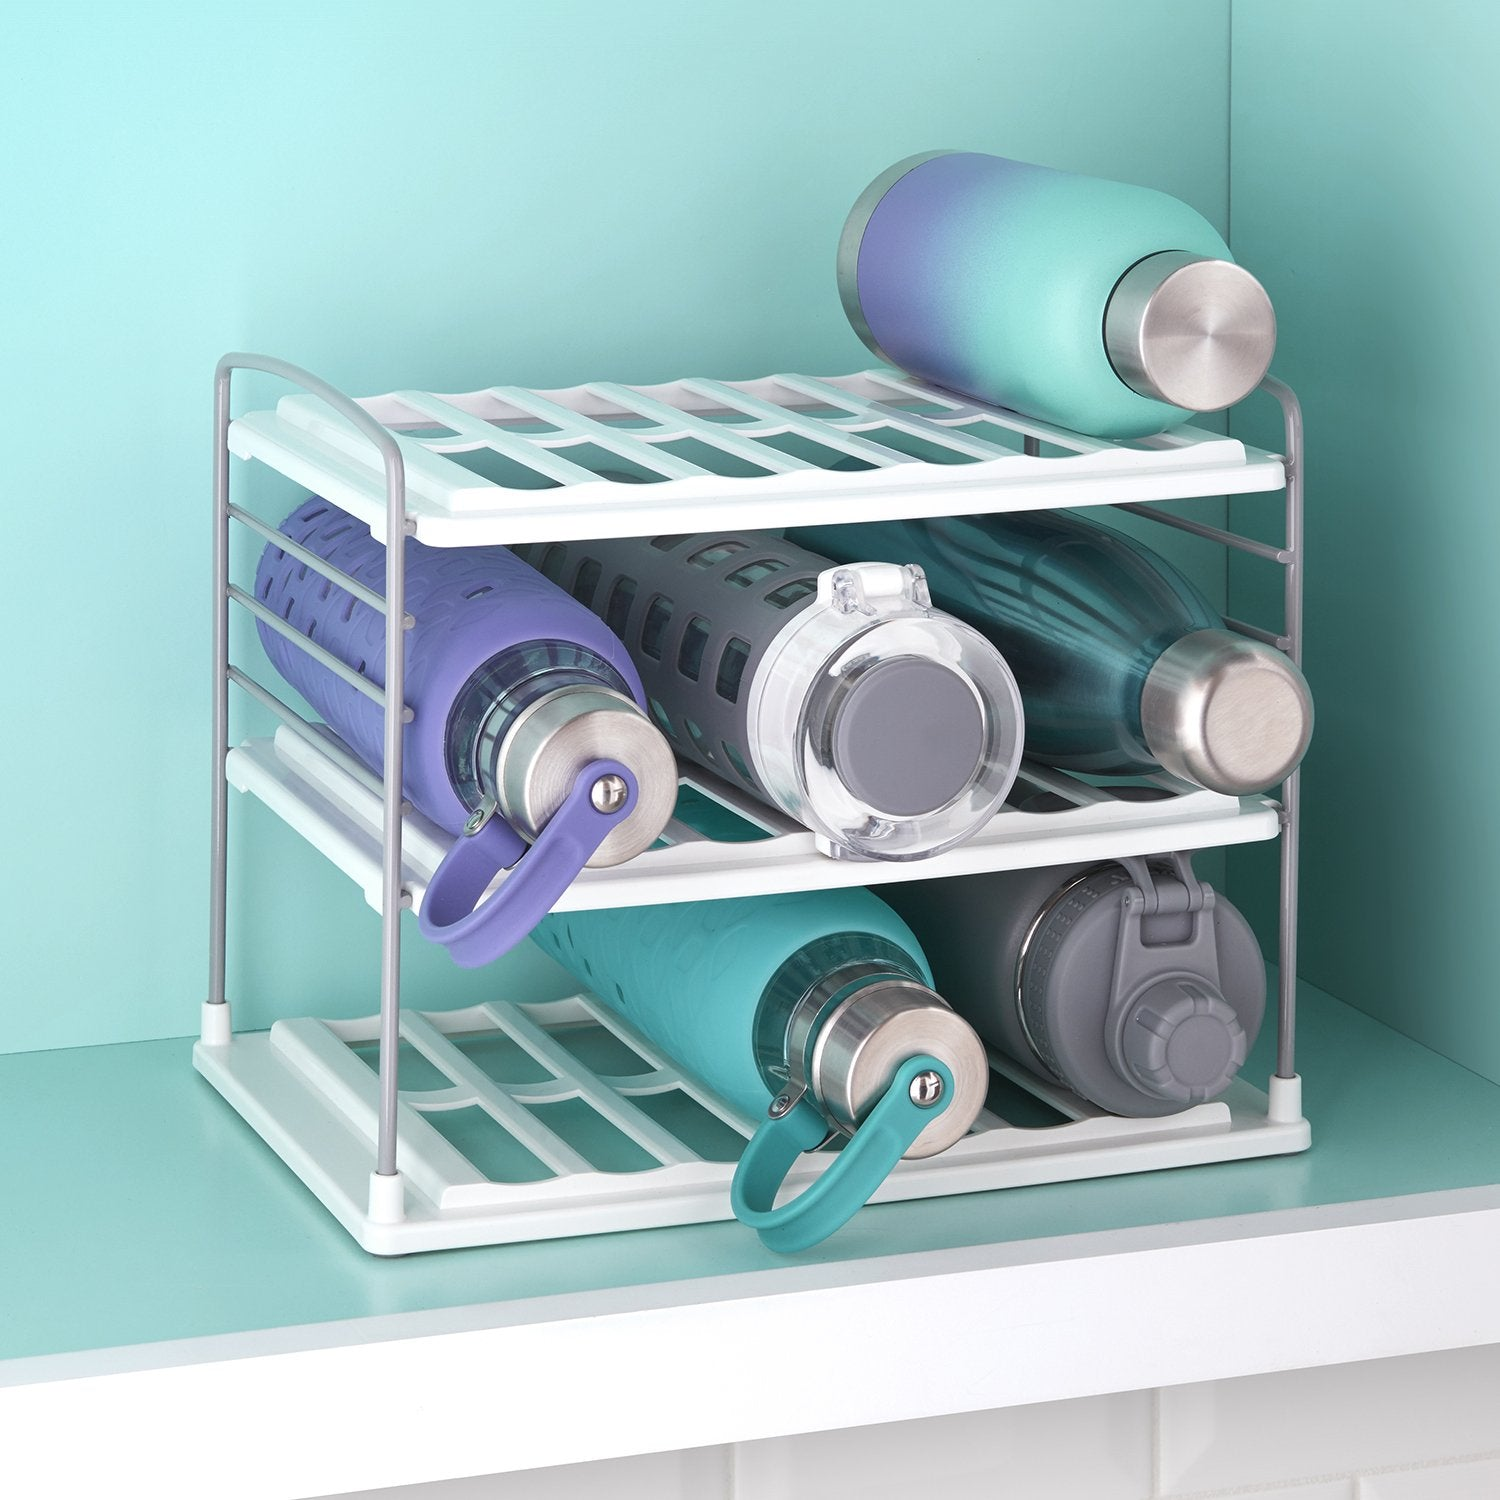 UpSpace Water Bottle and Travel Mug Organizer, Shelf